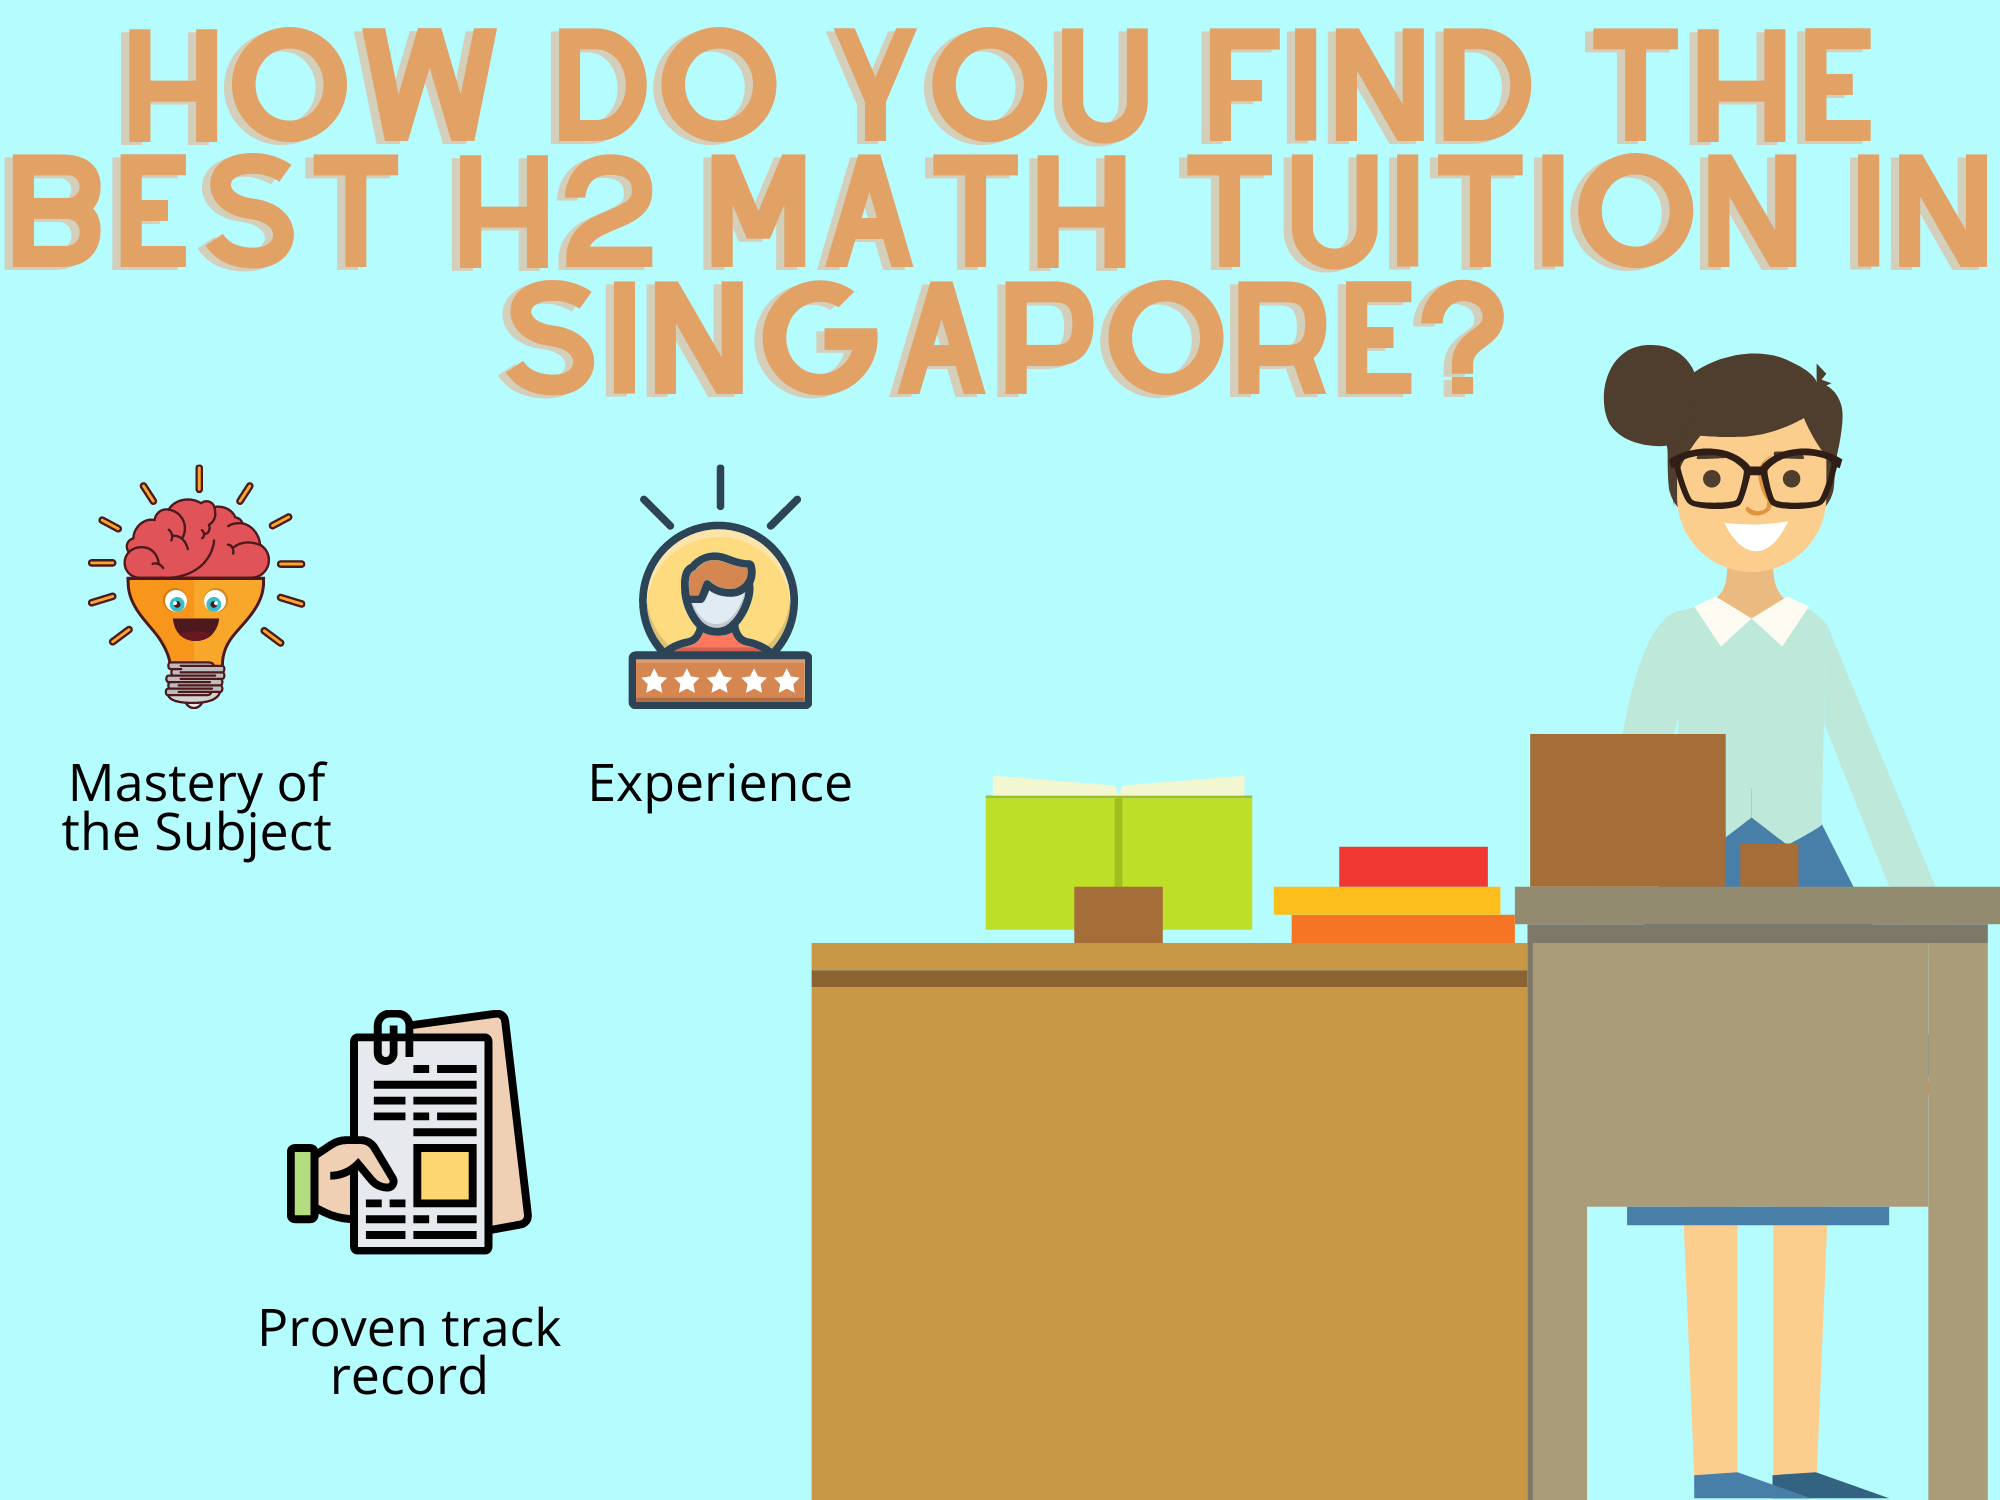 How-do-you-find-the-best-H2-Math-Tuition-in-Singapore